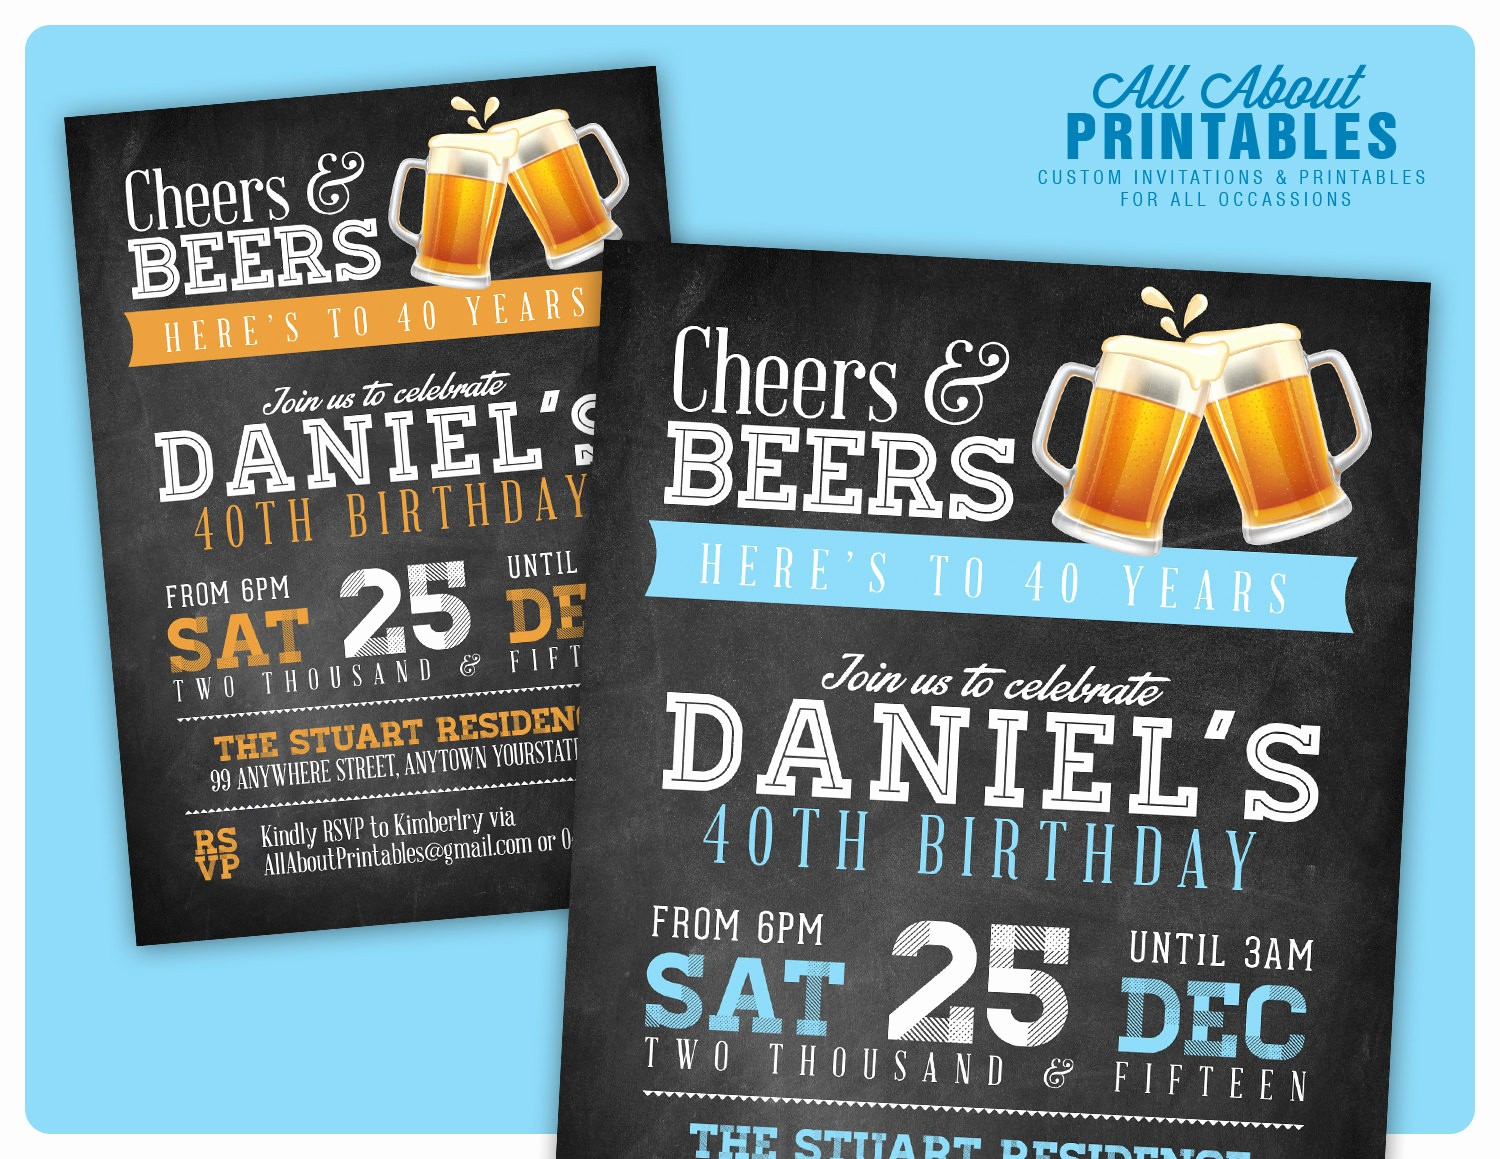 Free 40th Birthday Invitations Templates Best Of 40th Birthday Invitation for Men Cheers & Beers Invitation